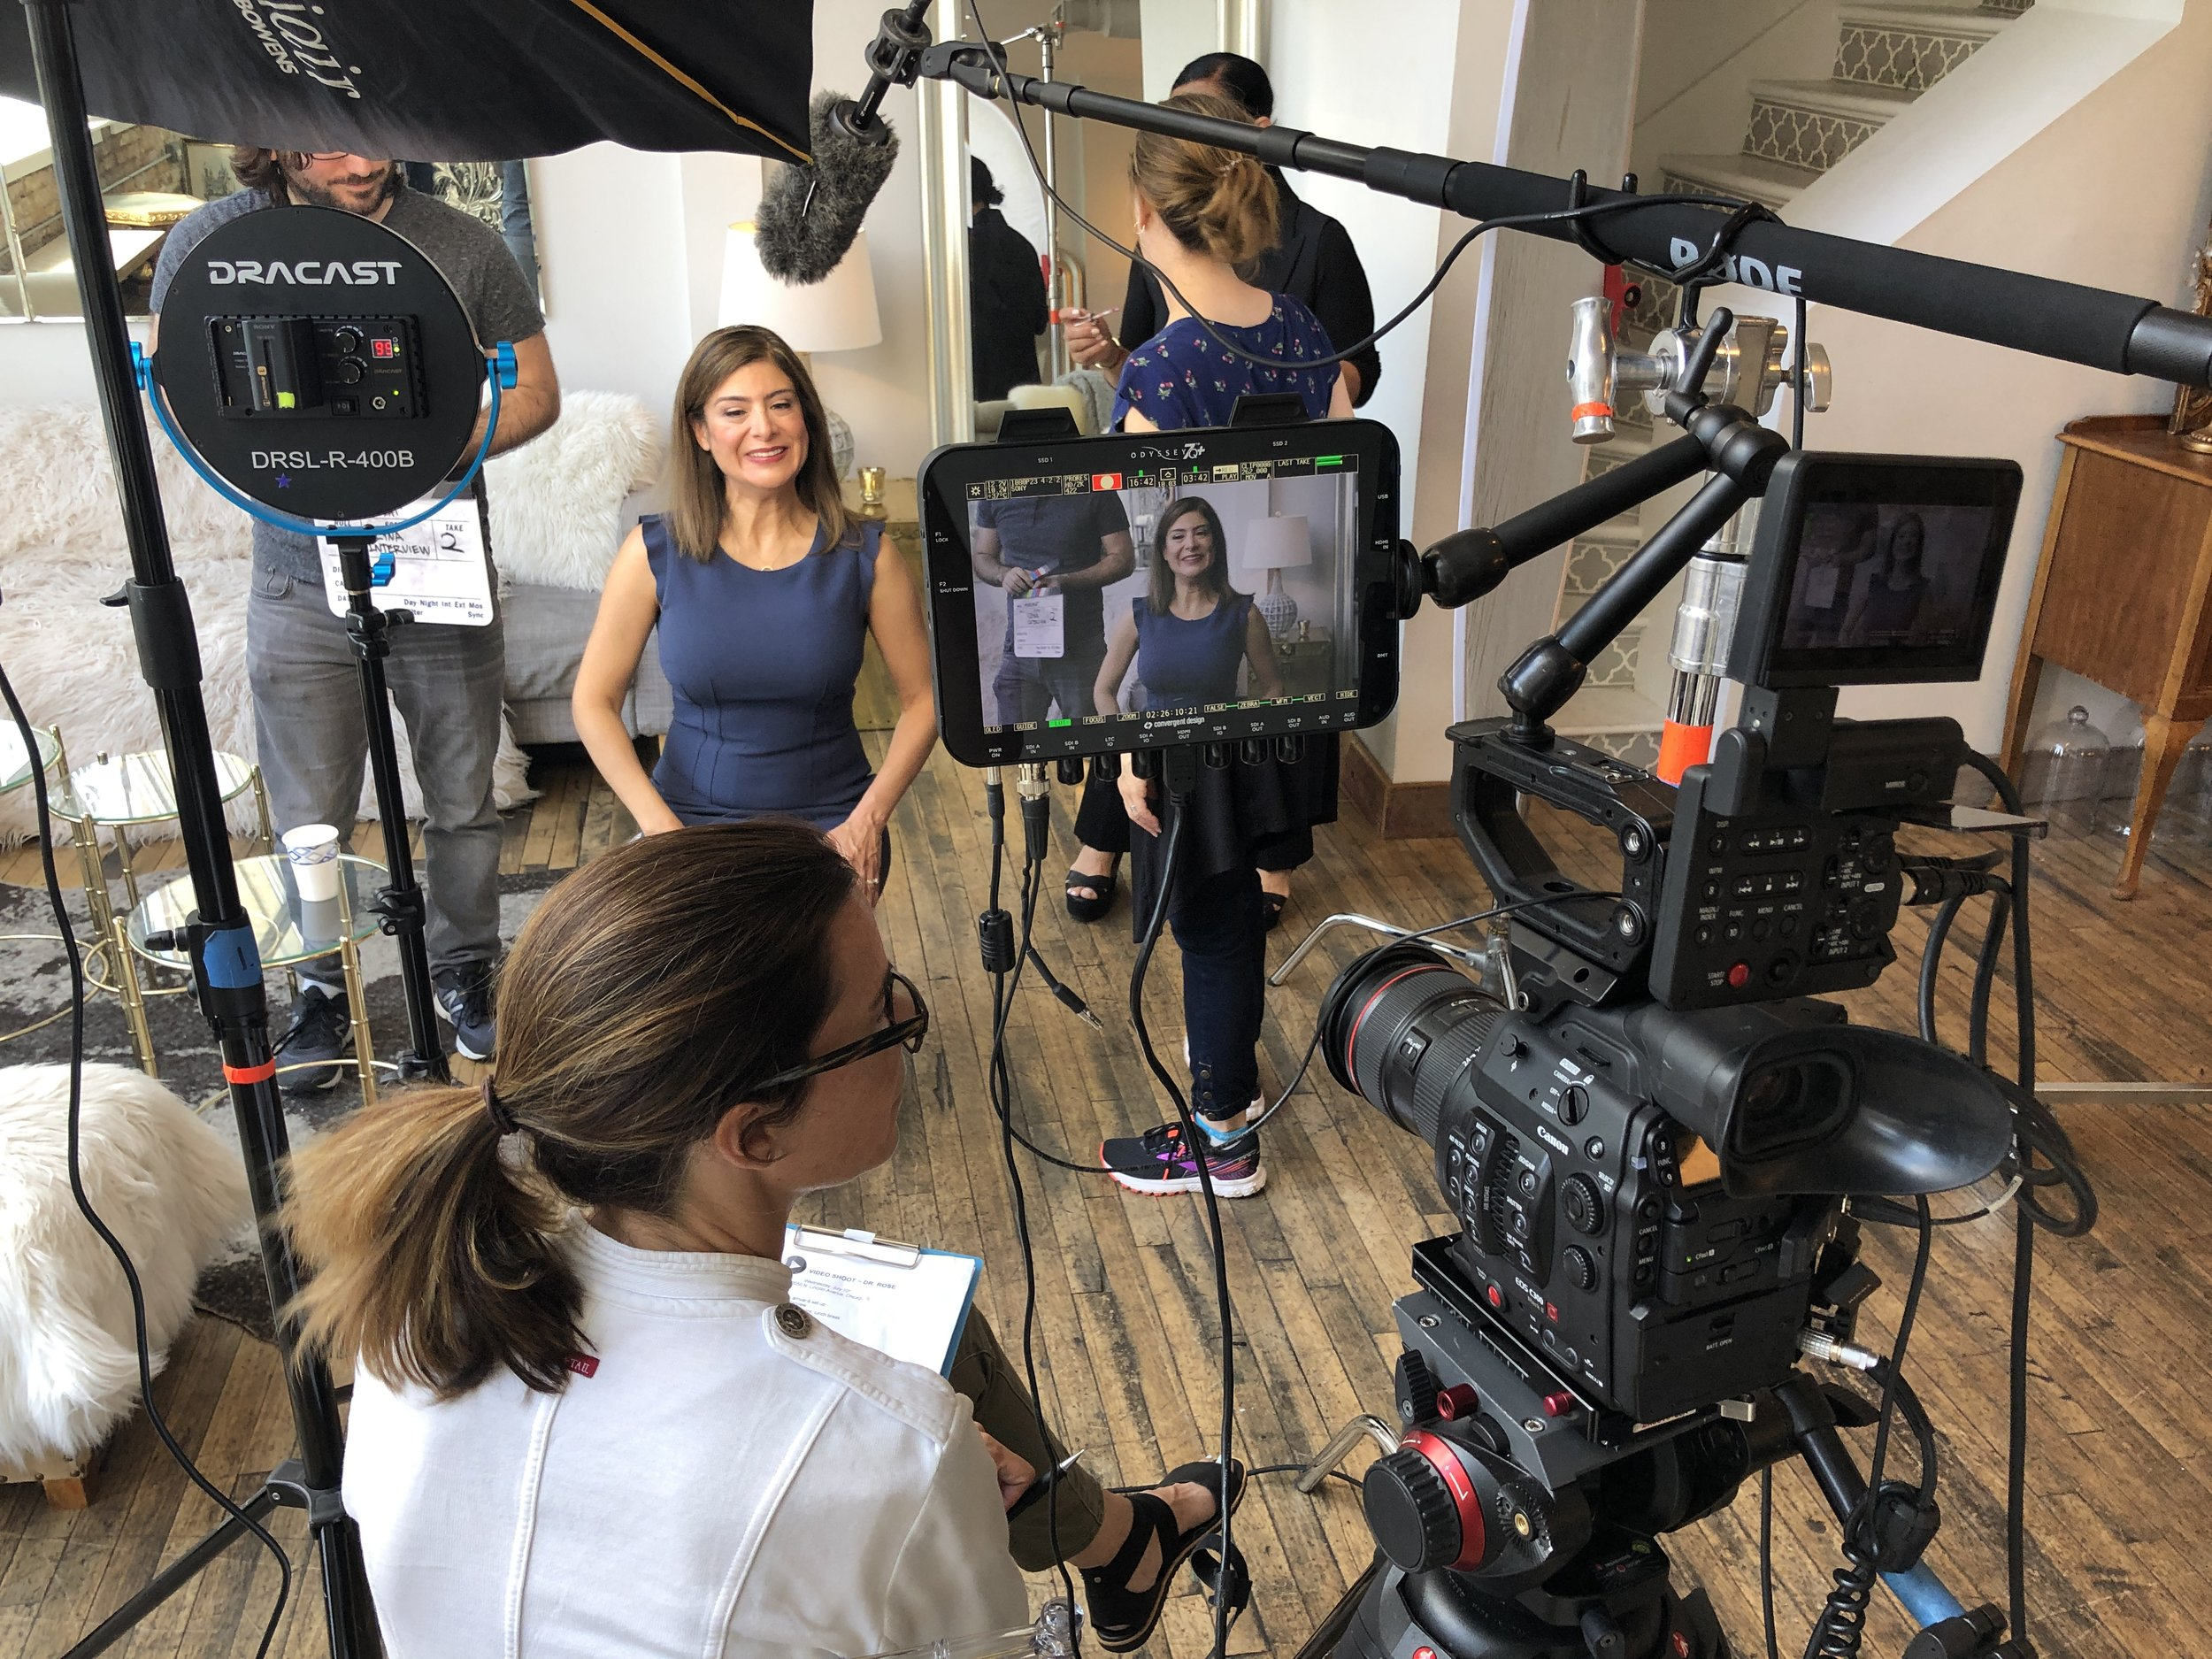 Video to Help You Grow - Storybeat Studio wants to help your business grow. That's why our award-winning team is offering professional production quality at a cost-effective price for your small or growing business.